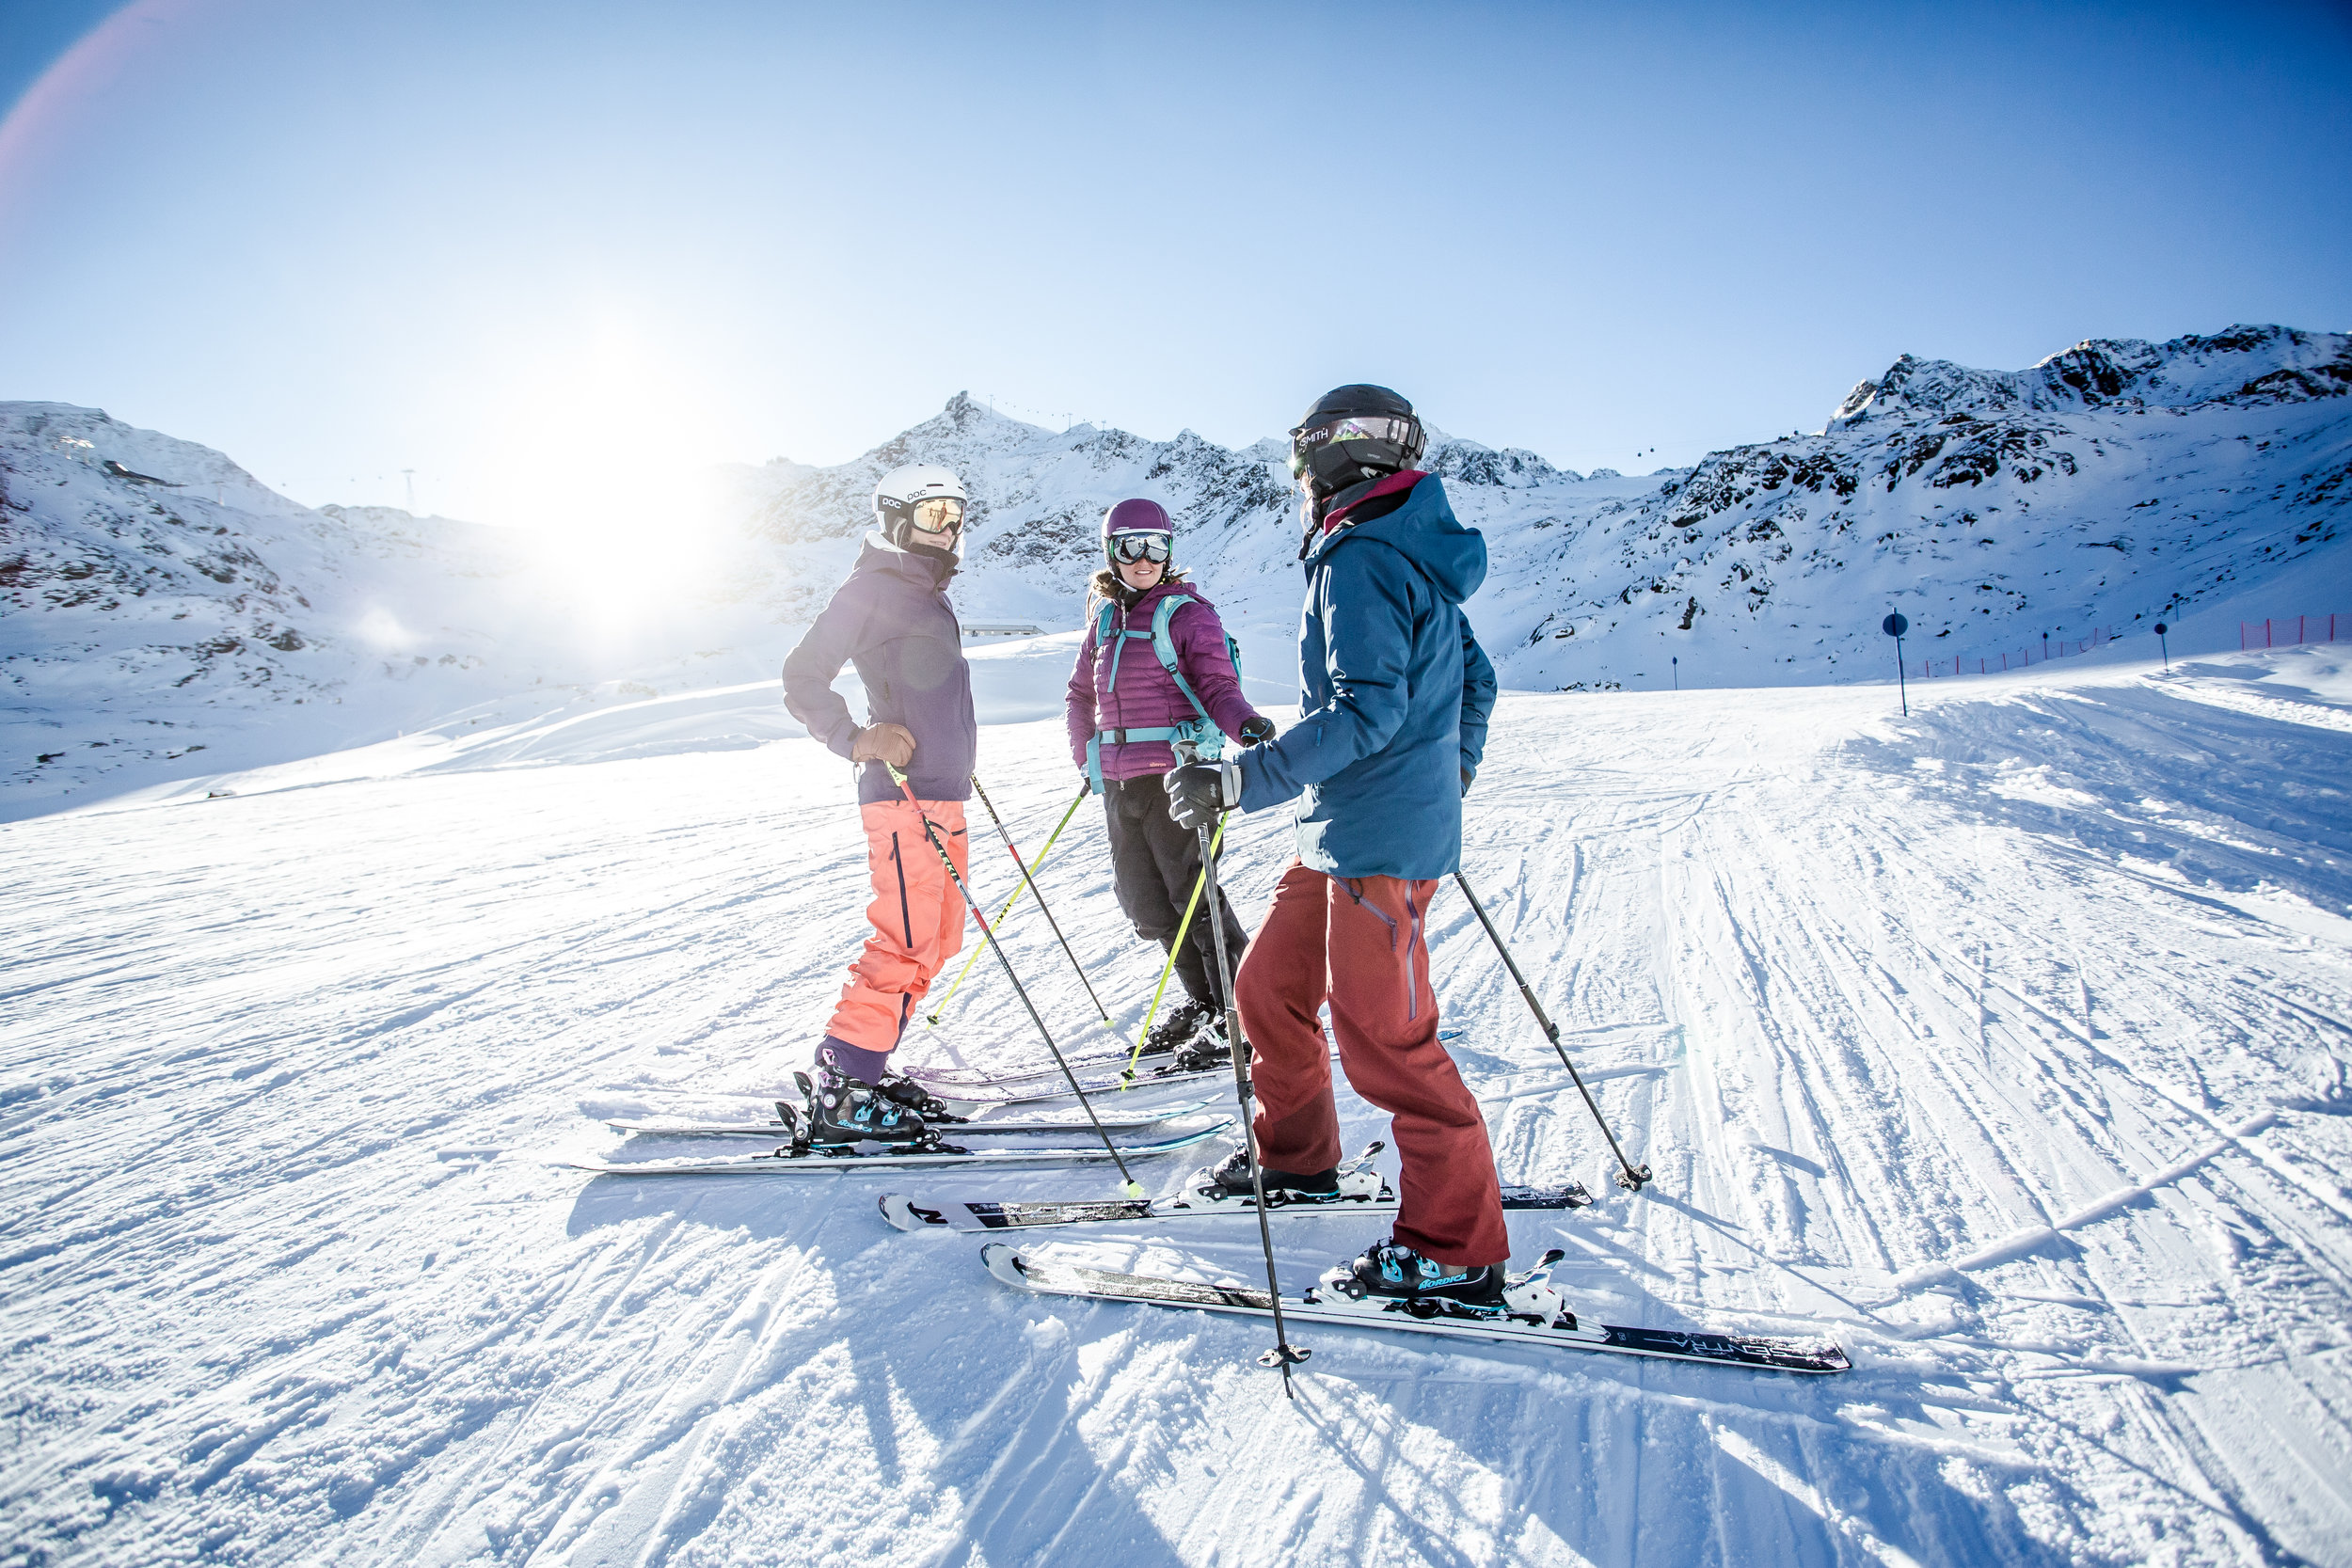 1/2 day at the Arlberg= 225€/1PAx+30€ each additional Person - 1/2 day = 2hours